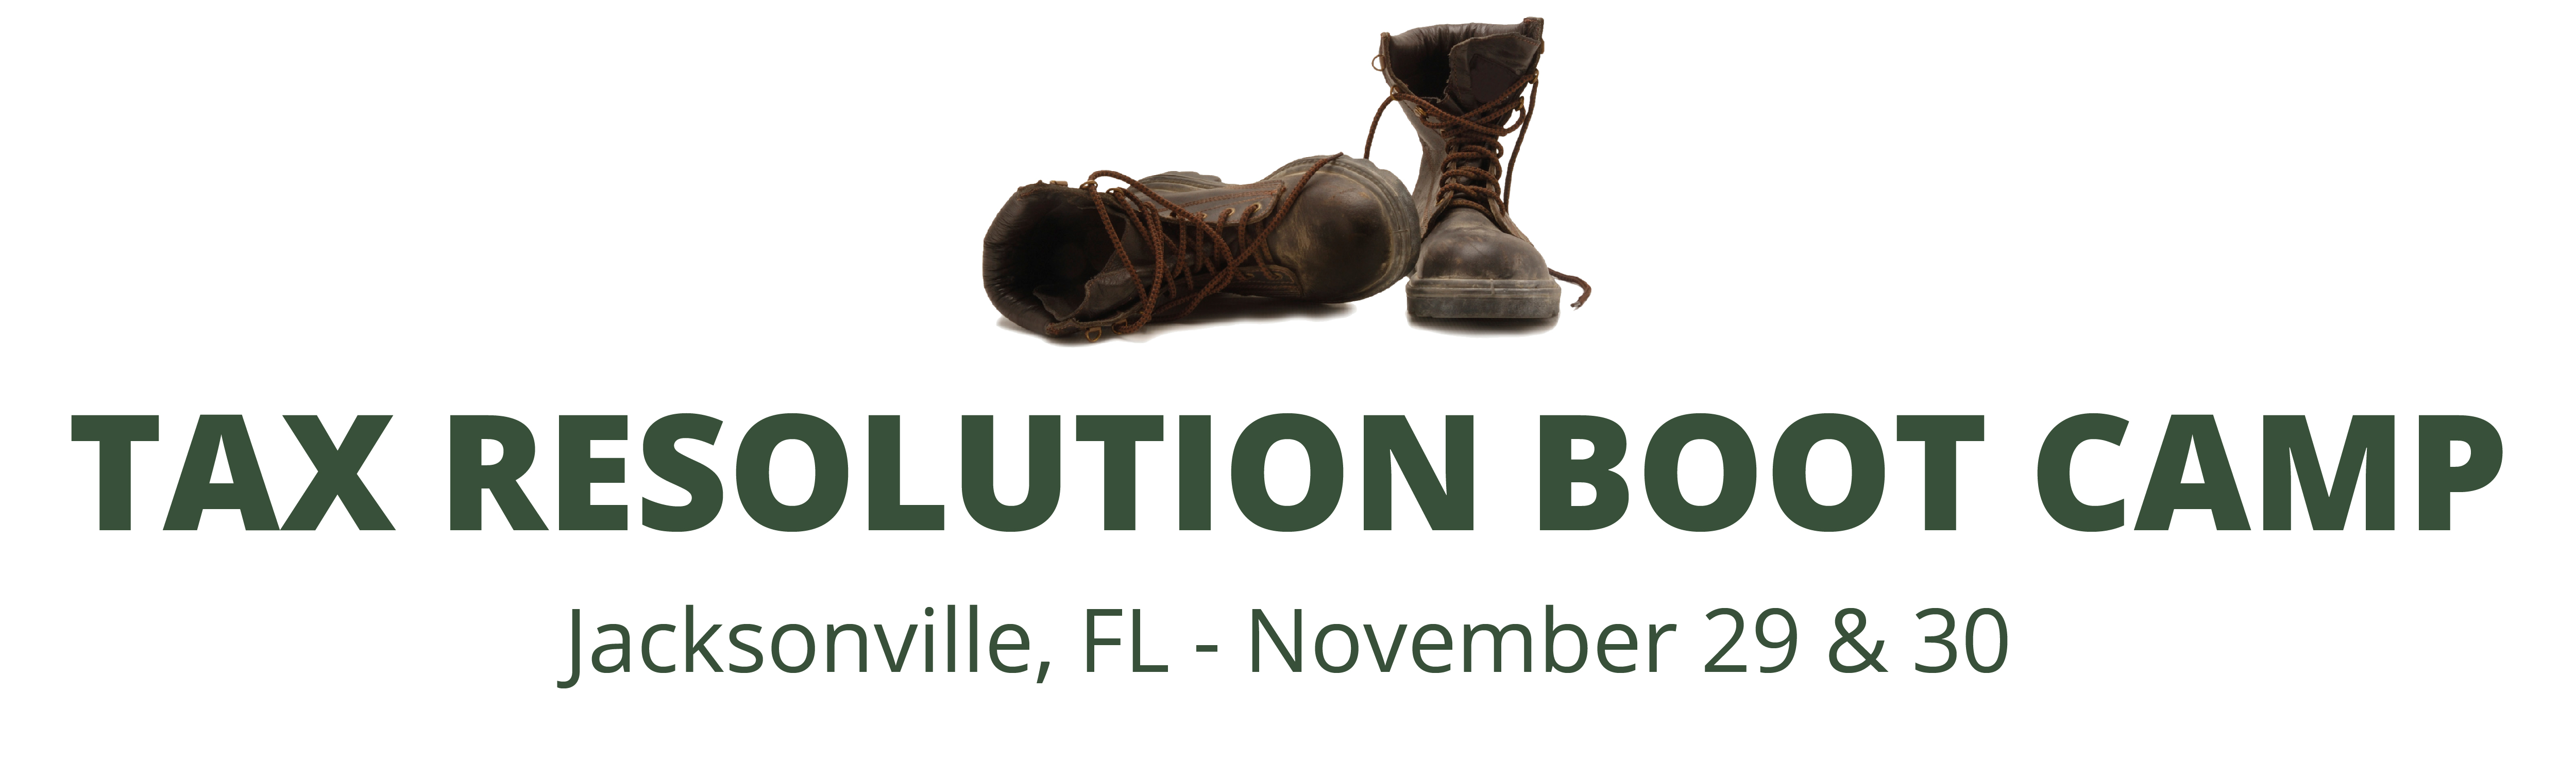 Jacksonville Boot Camp 2018